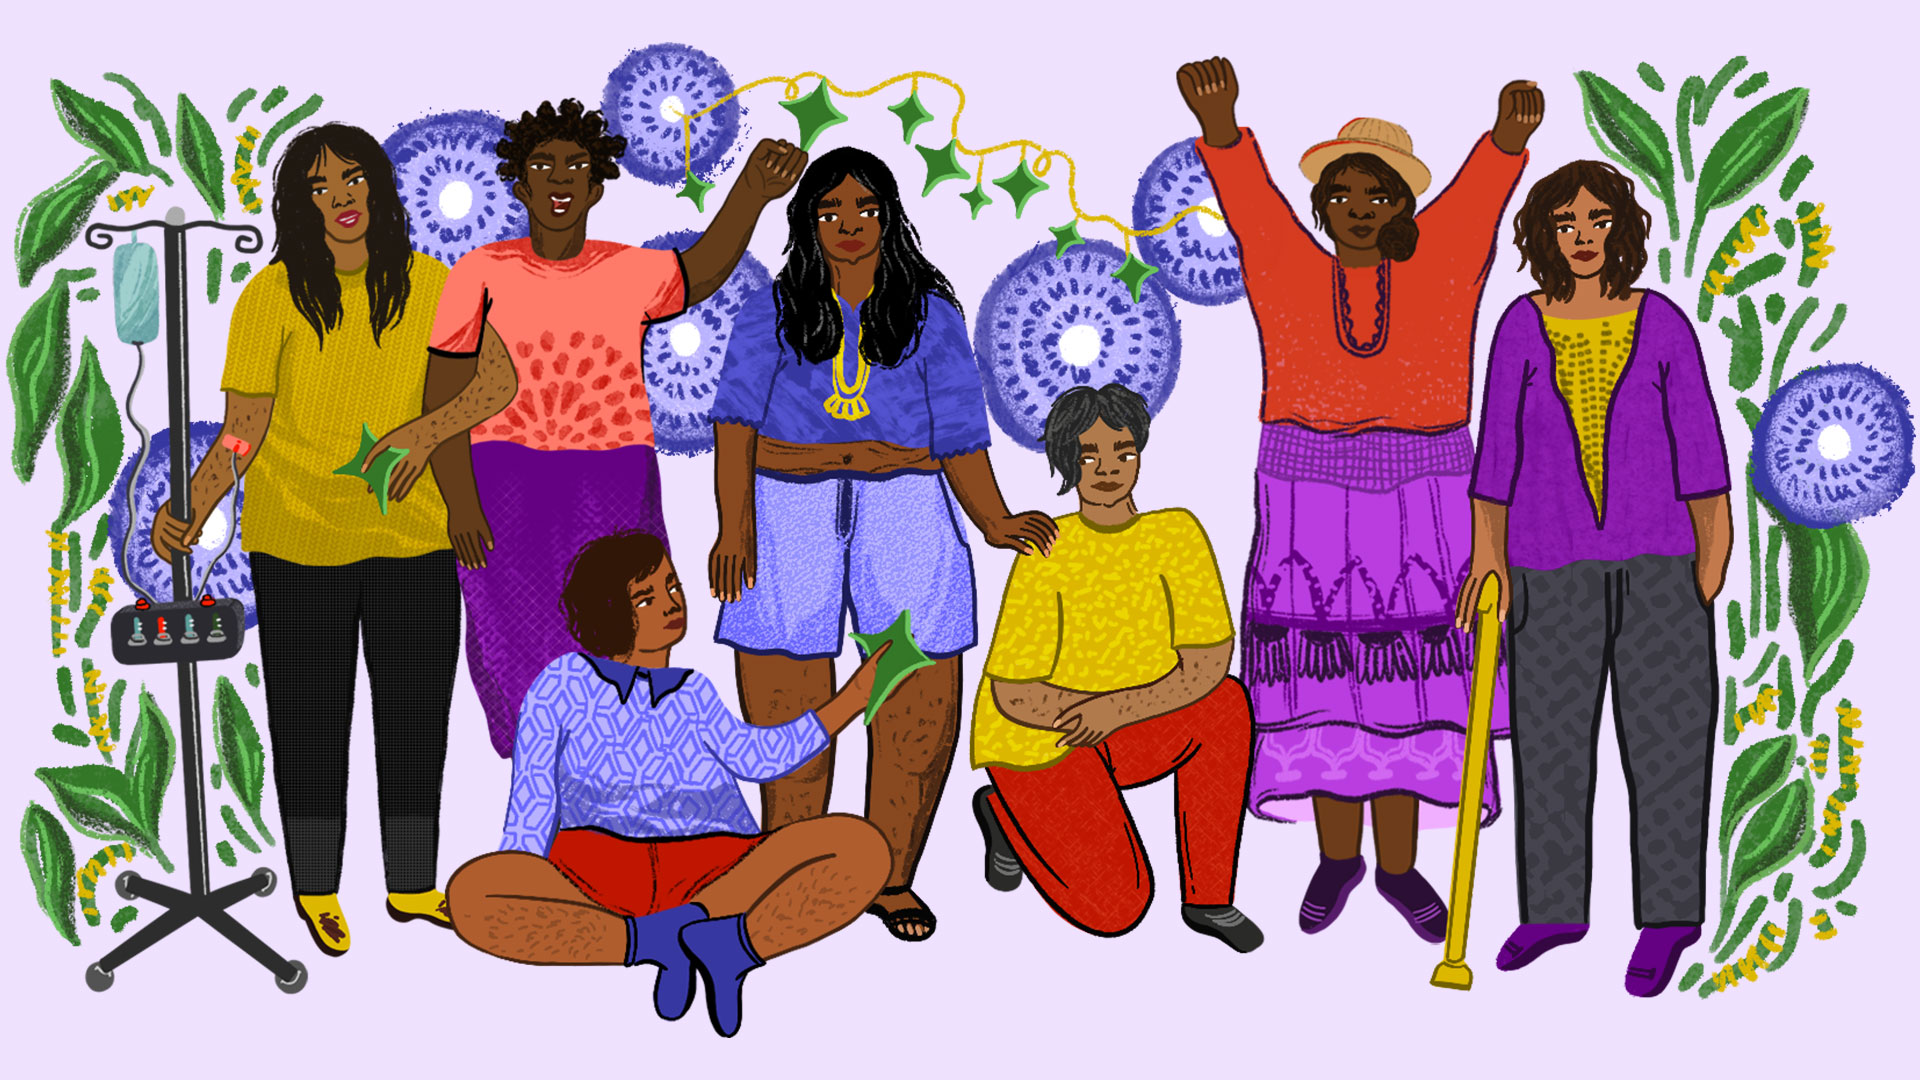 An illustration, five women standing up and two women sitting down with different ethnicities, colour and abilities on a flowery background.